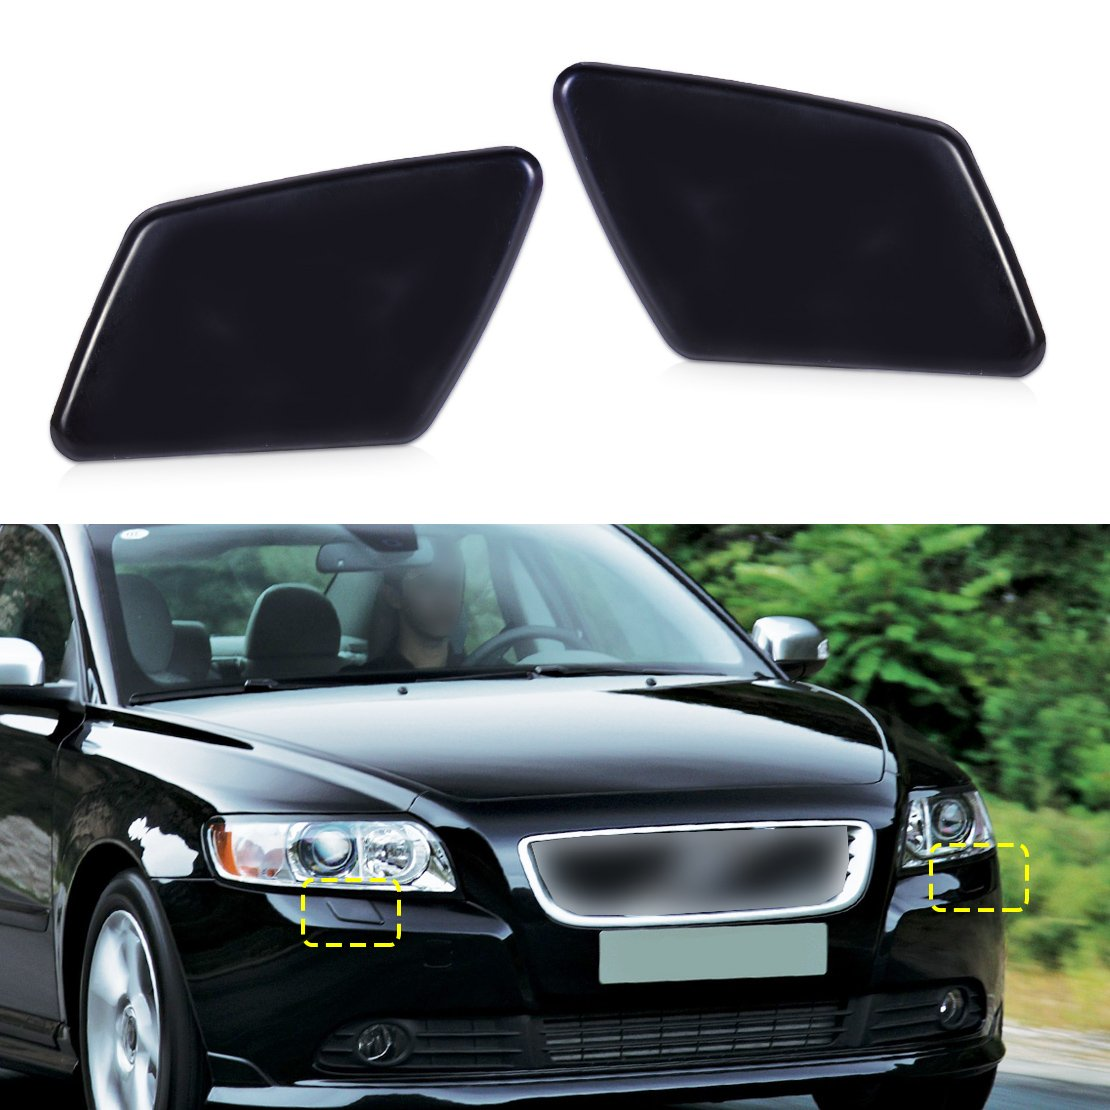 Headlight Washer Cover Keenso Car Headlight Washer Nozzle Cover Cap for Volvo XC90 2003-2006 30698209 30698208